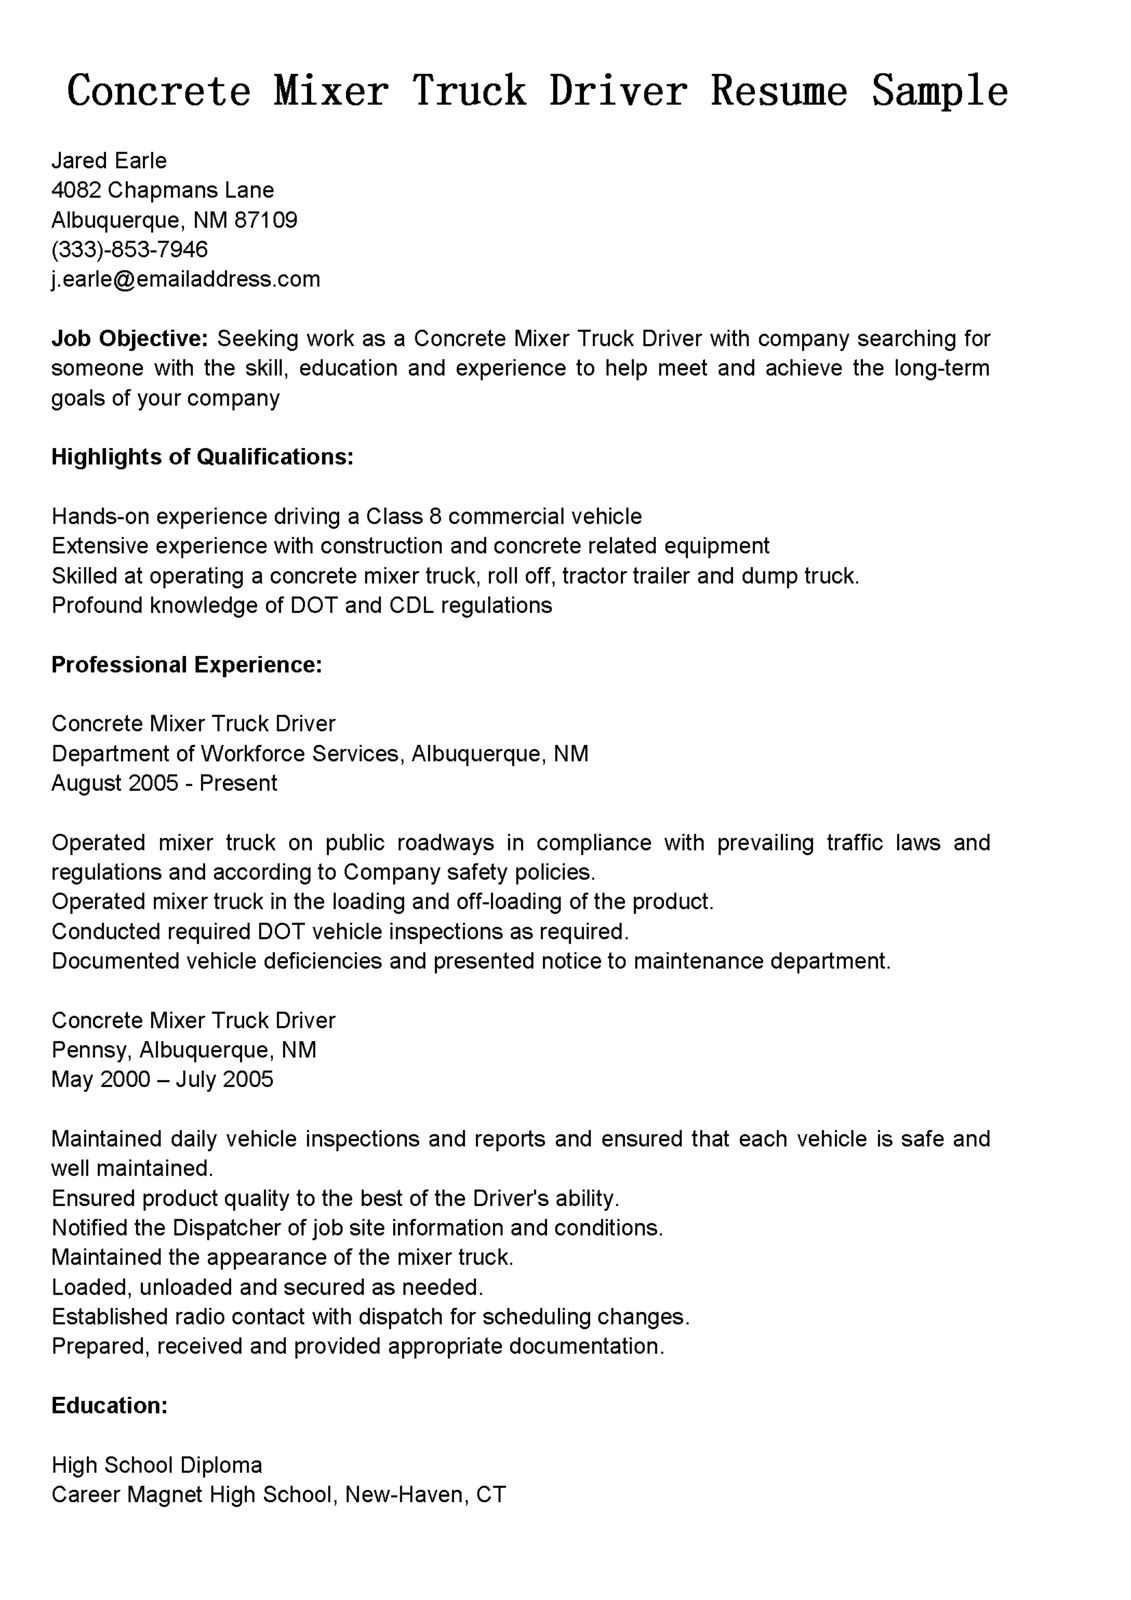 Driver Resumes Concrete Mixer Truck Resume Sample Bus Writing